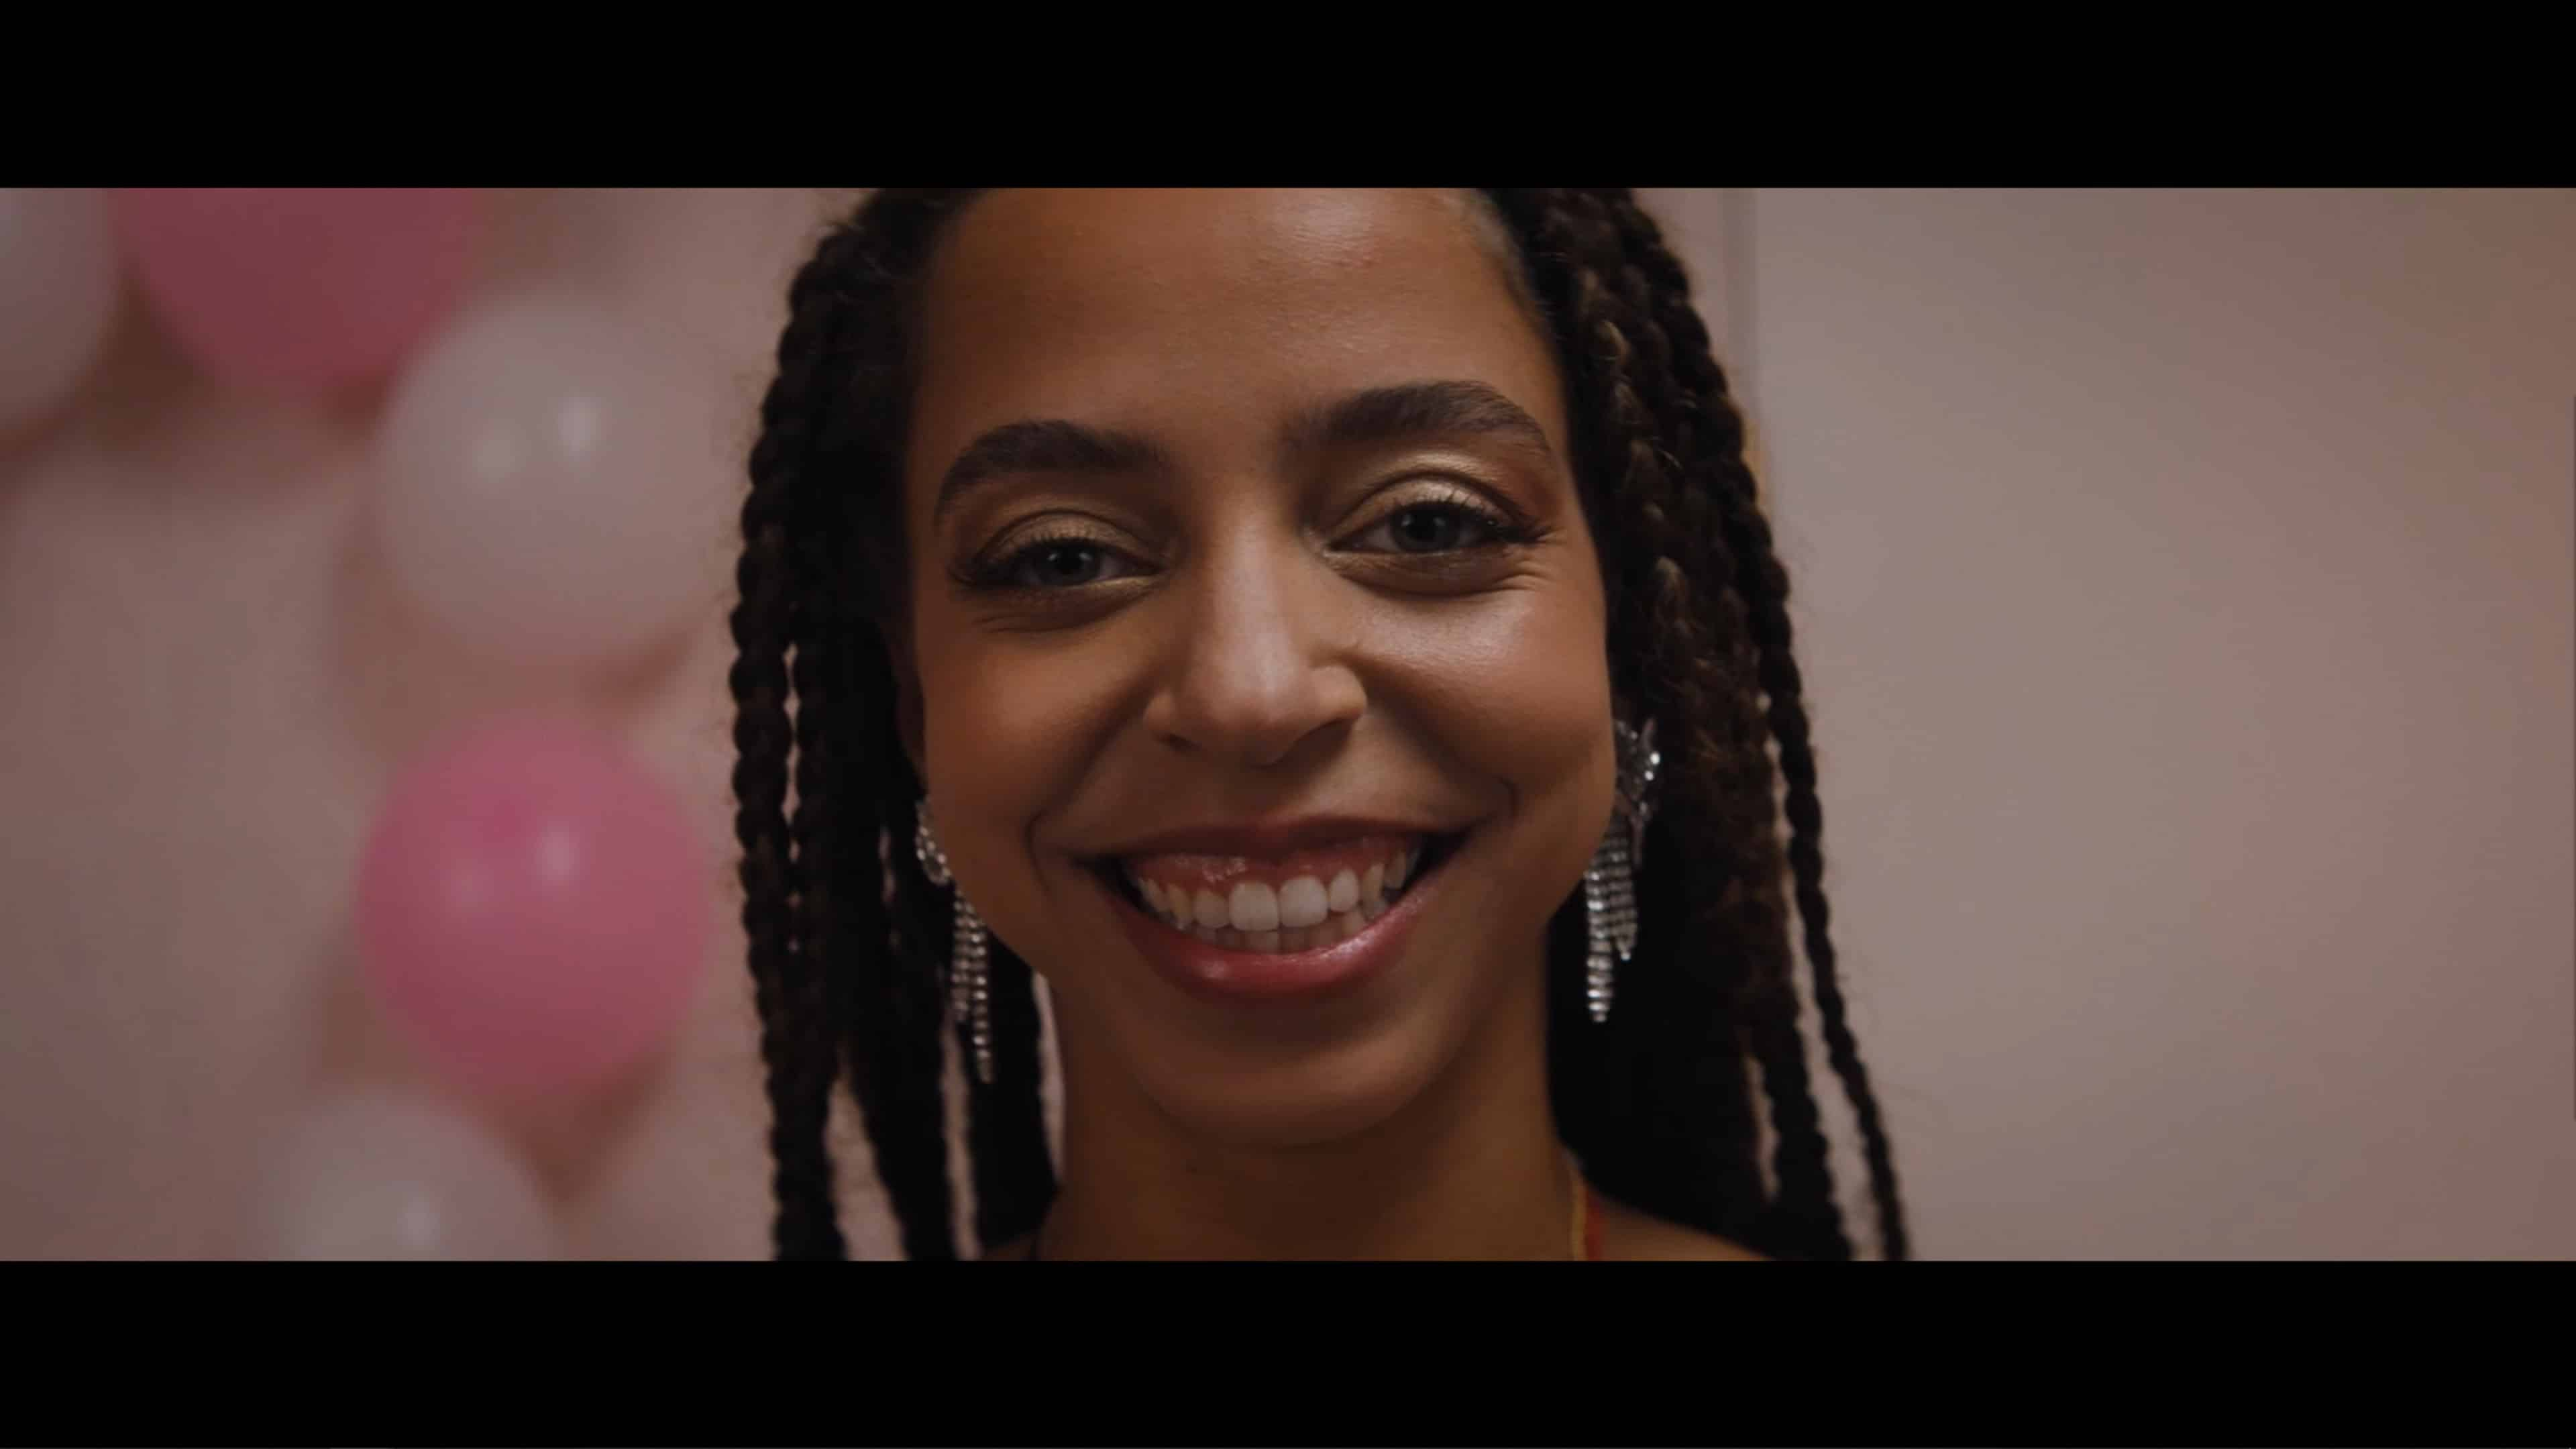 Mary (Hayley Law) smiling